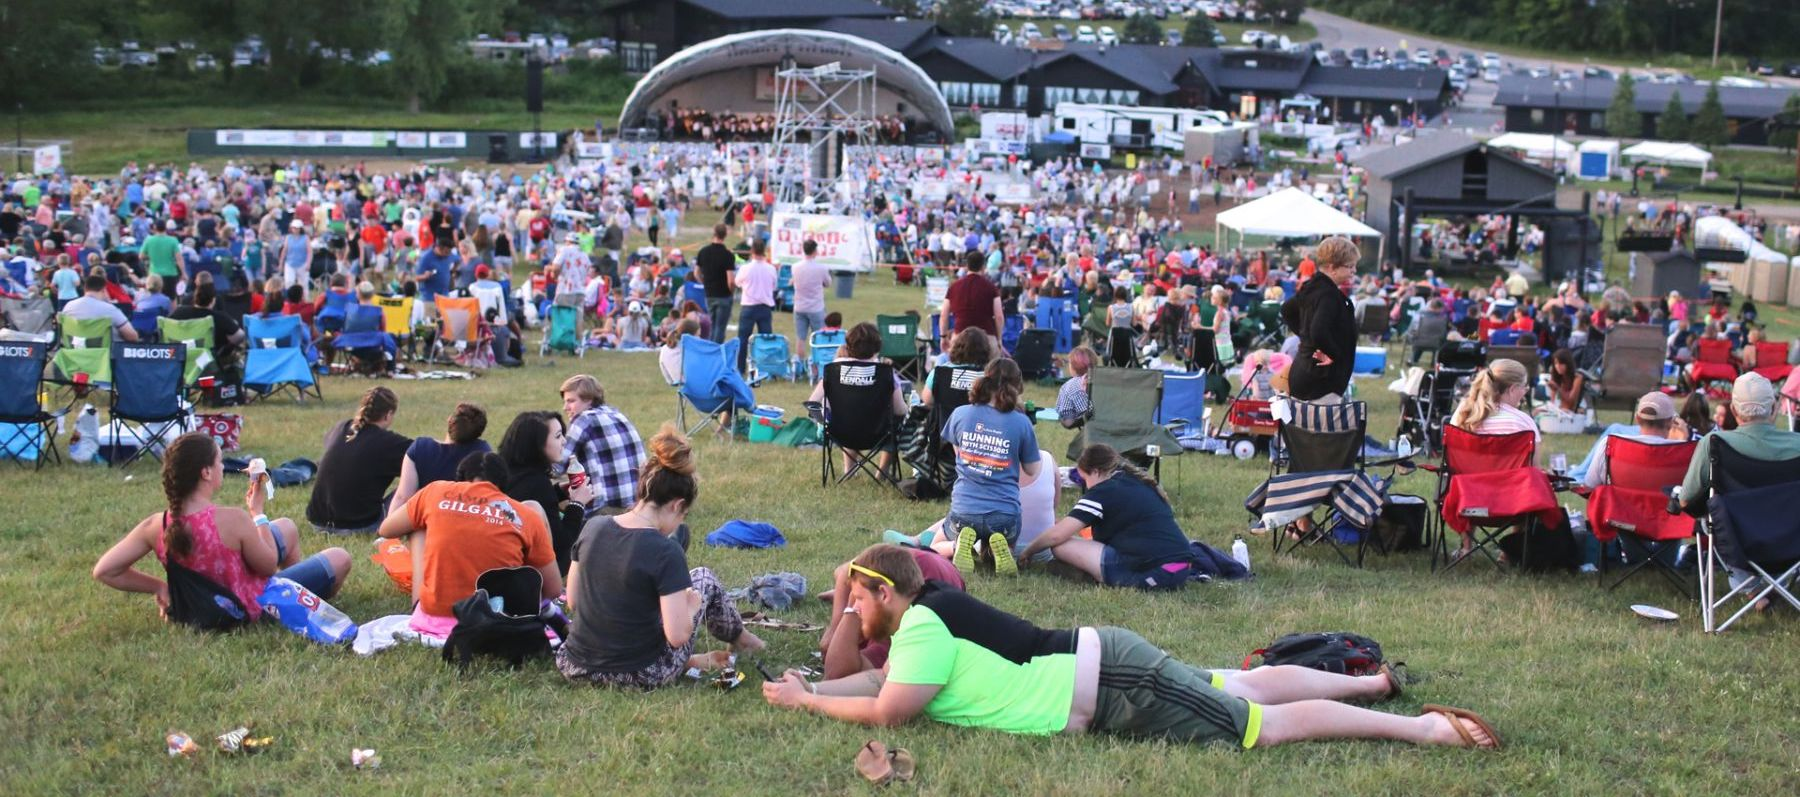 Grand rapids symphony will rock the hills of cannonsburg - Home and garden show 2017 grand rapids ...